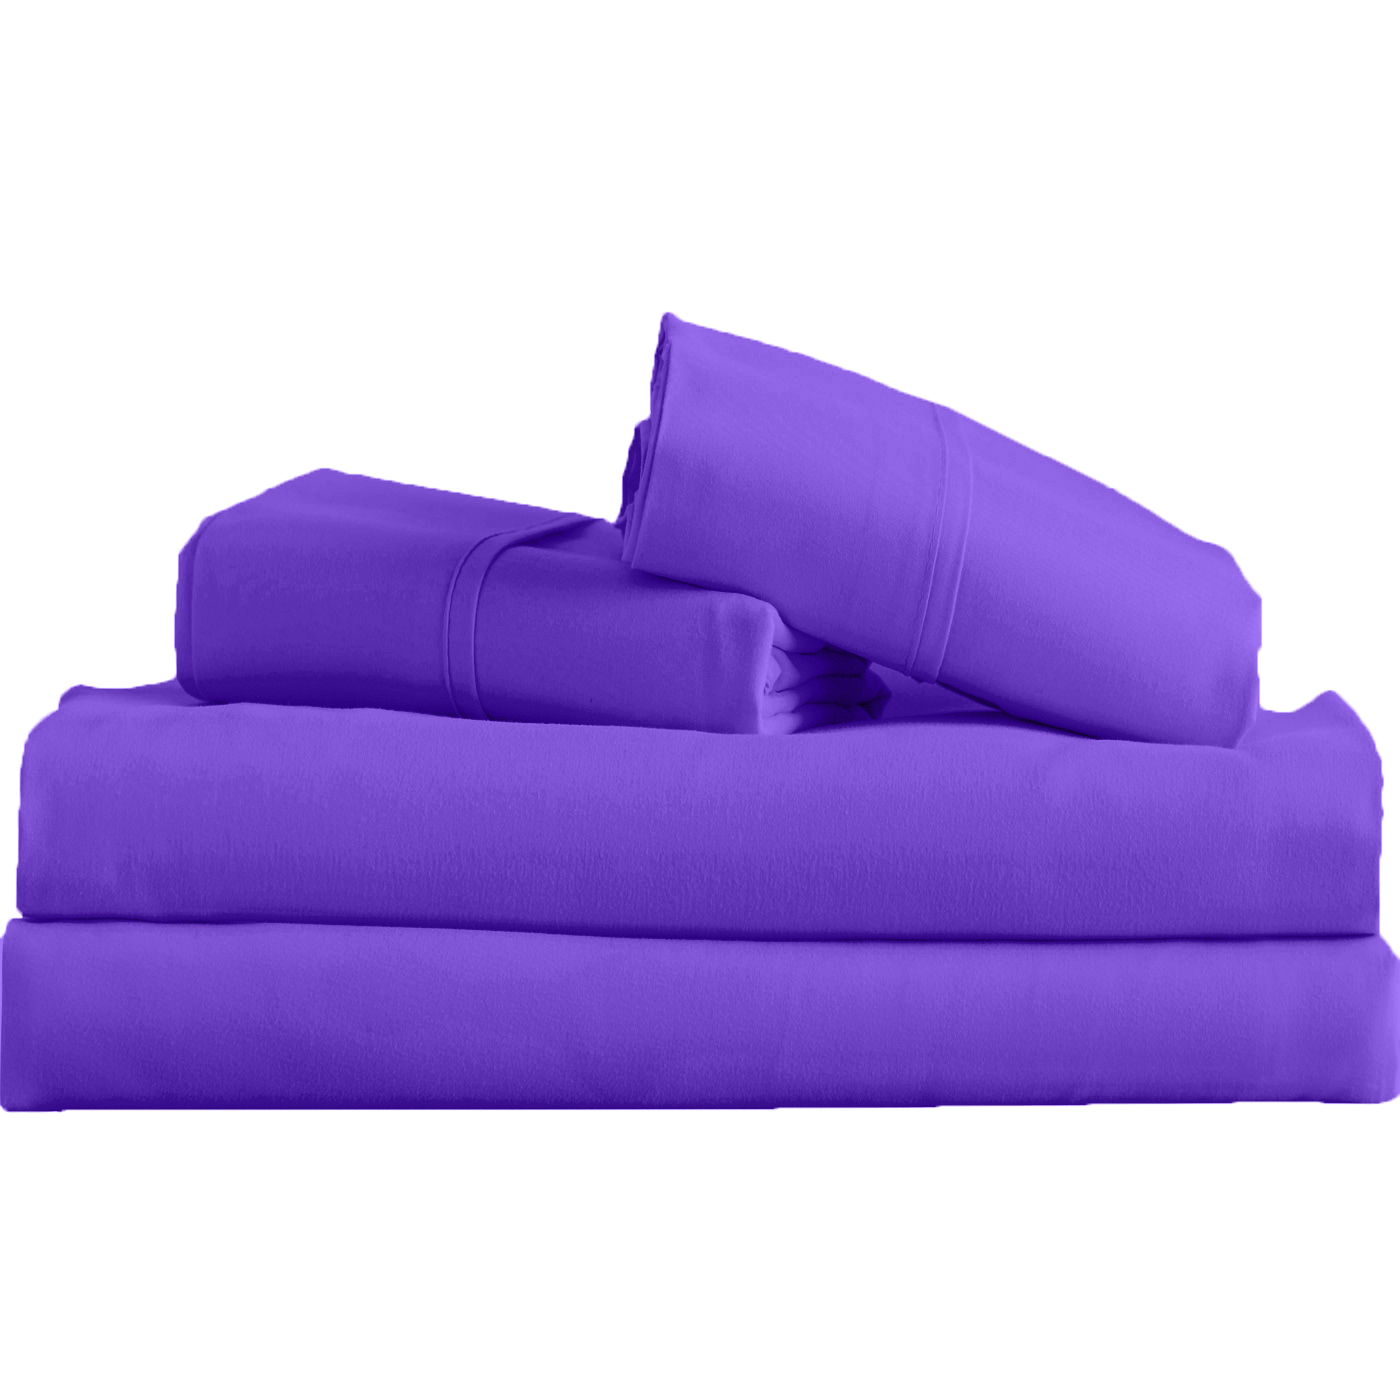 Supreme-Super-Soft-4-Piece-Bed-Sheet-Set-Deep-Pocket-Bedding-All-Colors-Sizes thumbnail 44